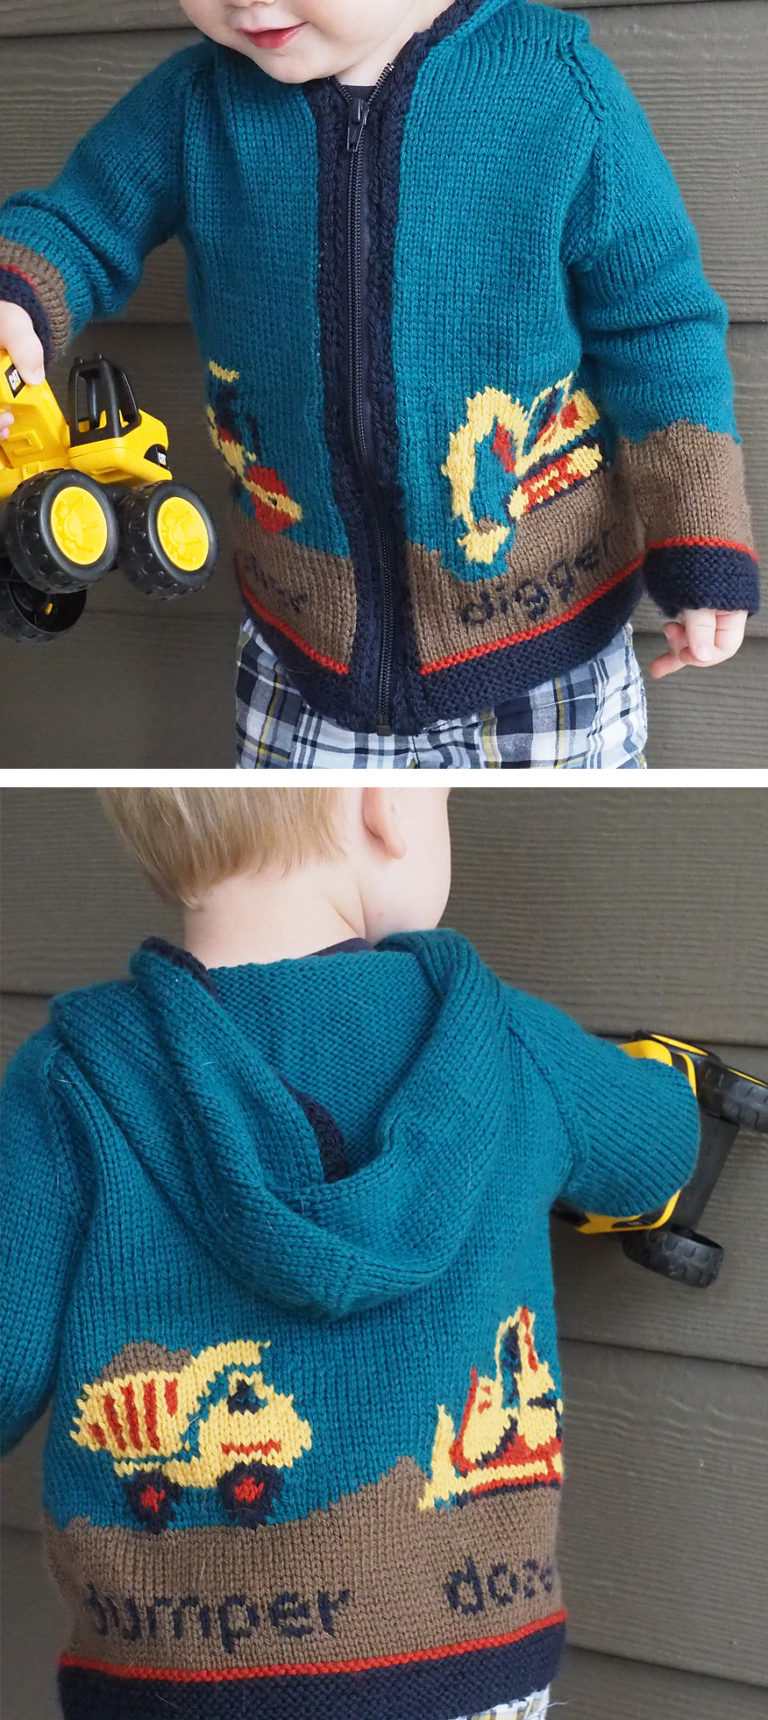 Free Knitting Pattern on Digger Jacket